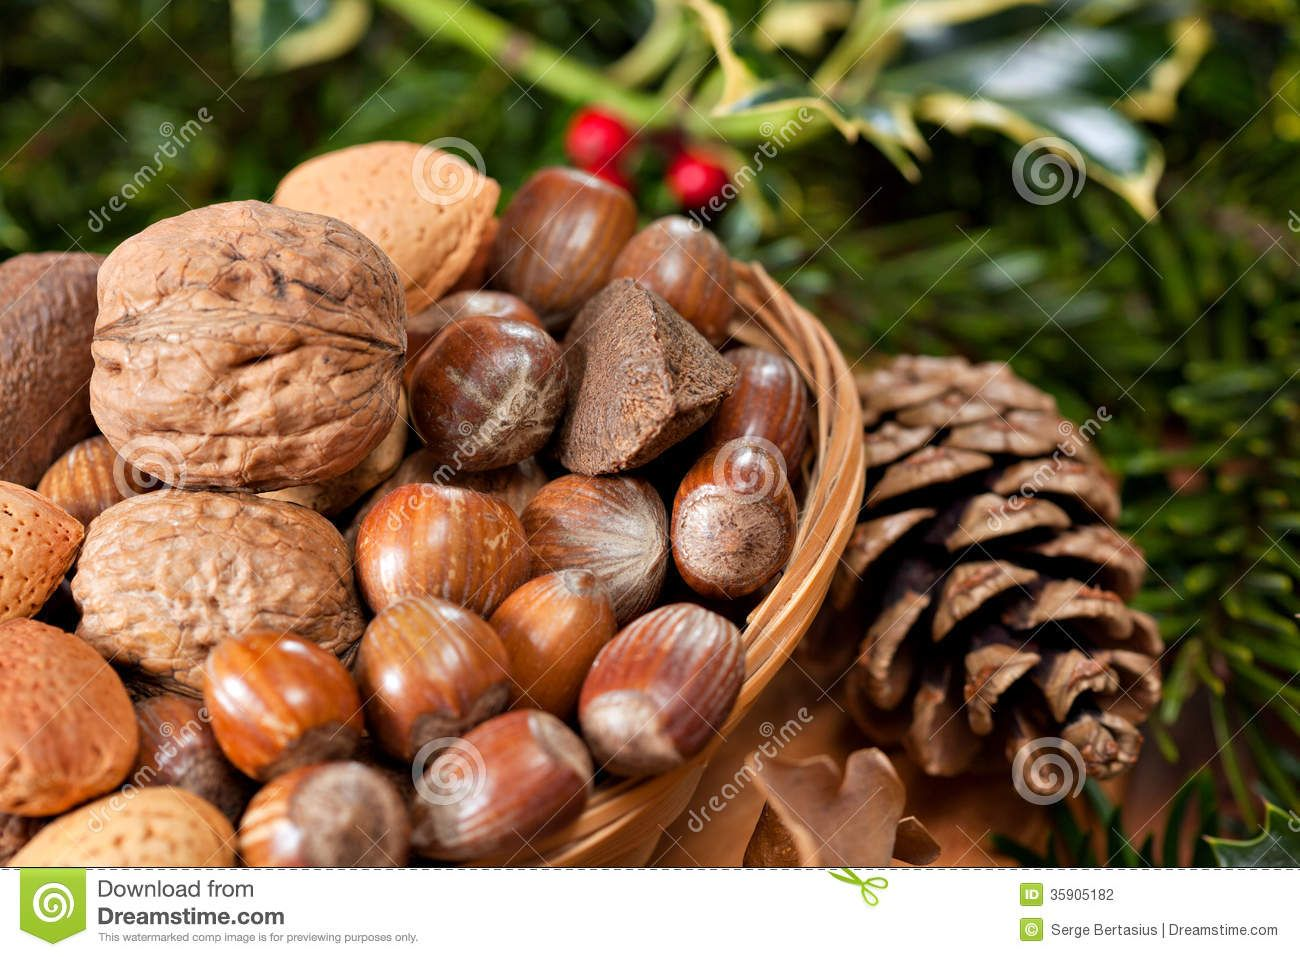 Christmas Nuts | Various Christmas nuts in basket with green twigs decoration.